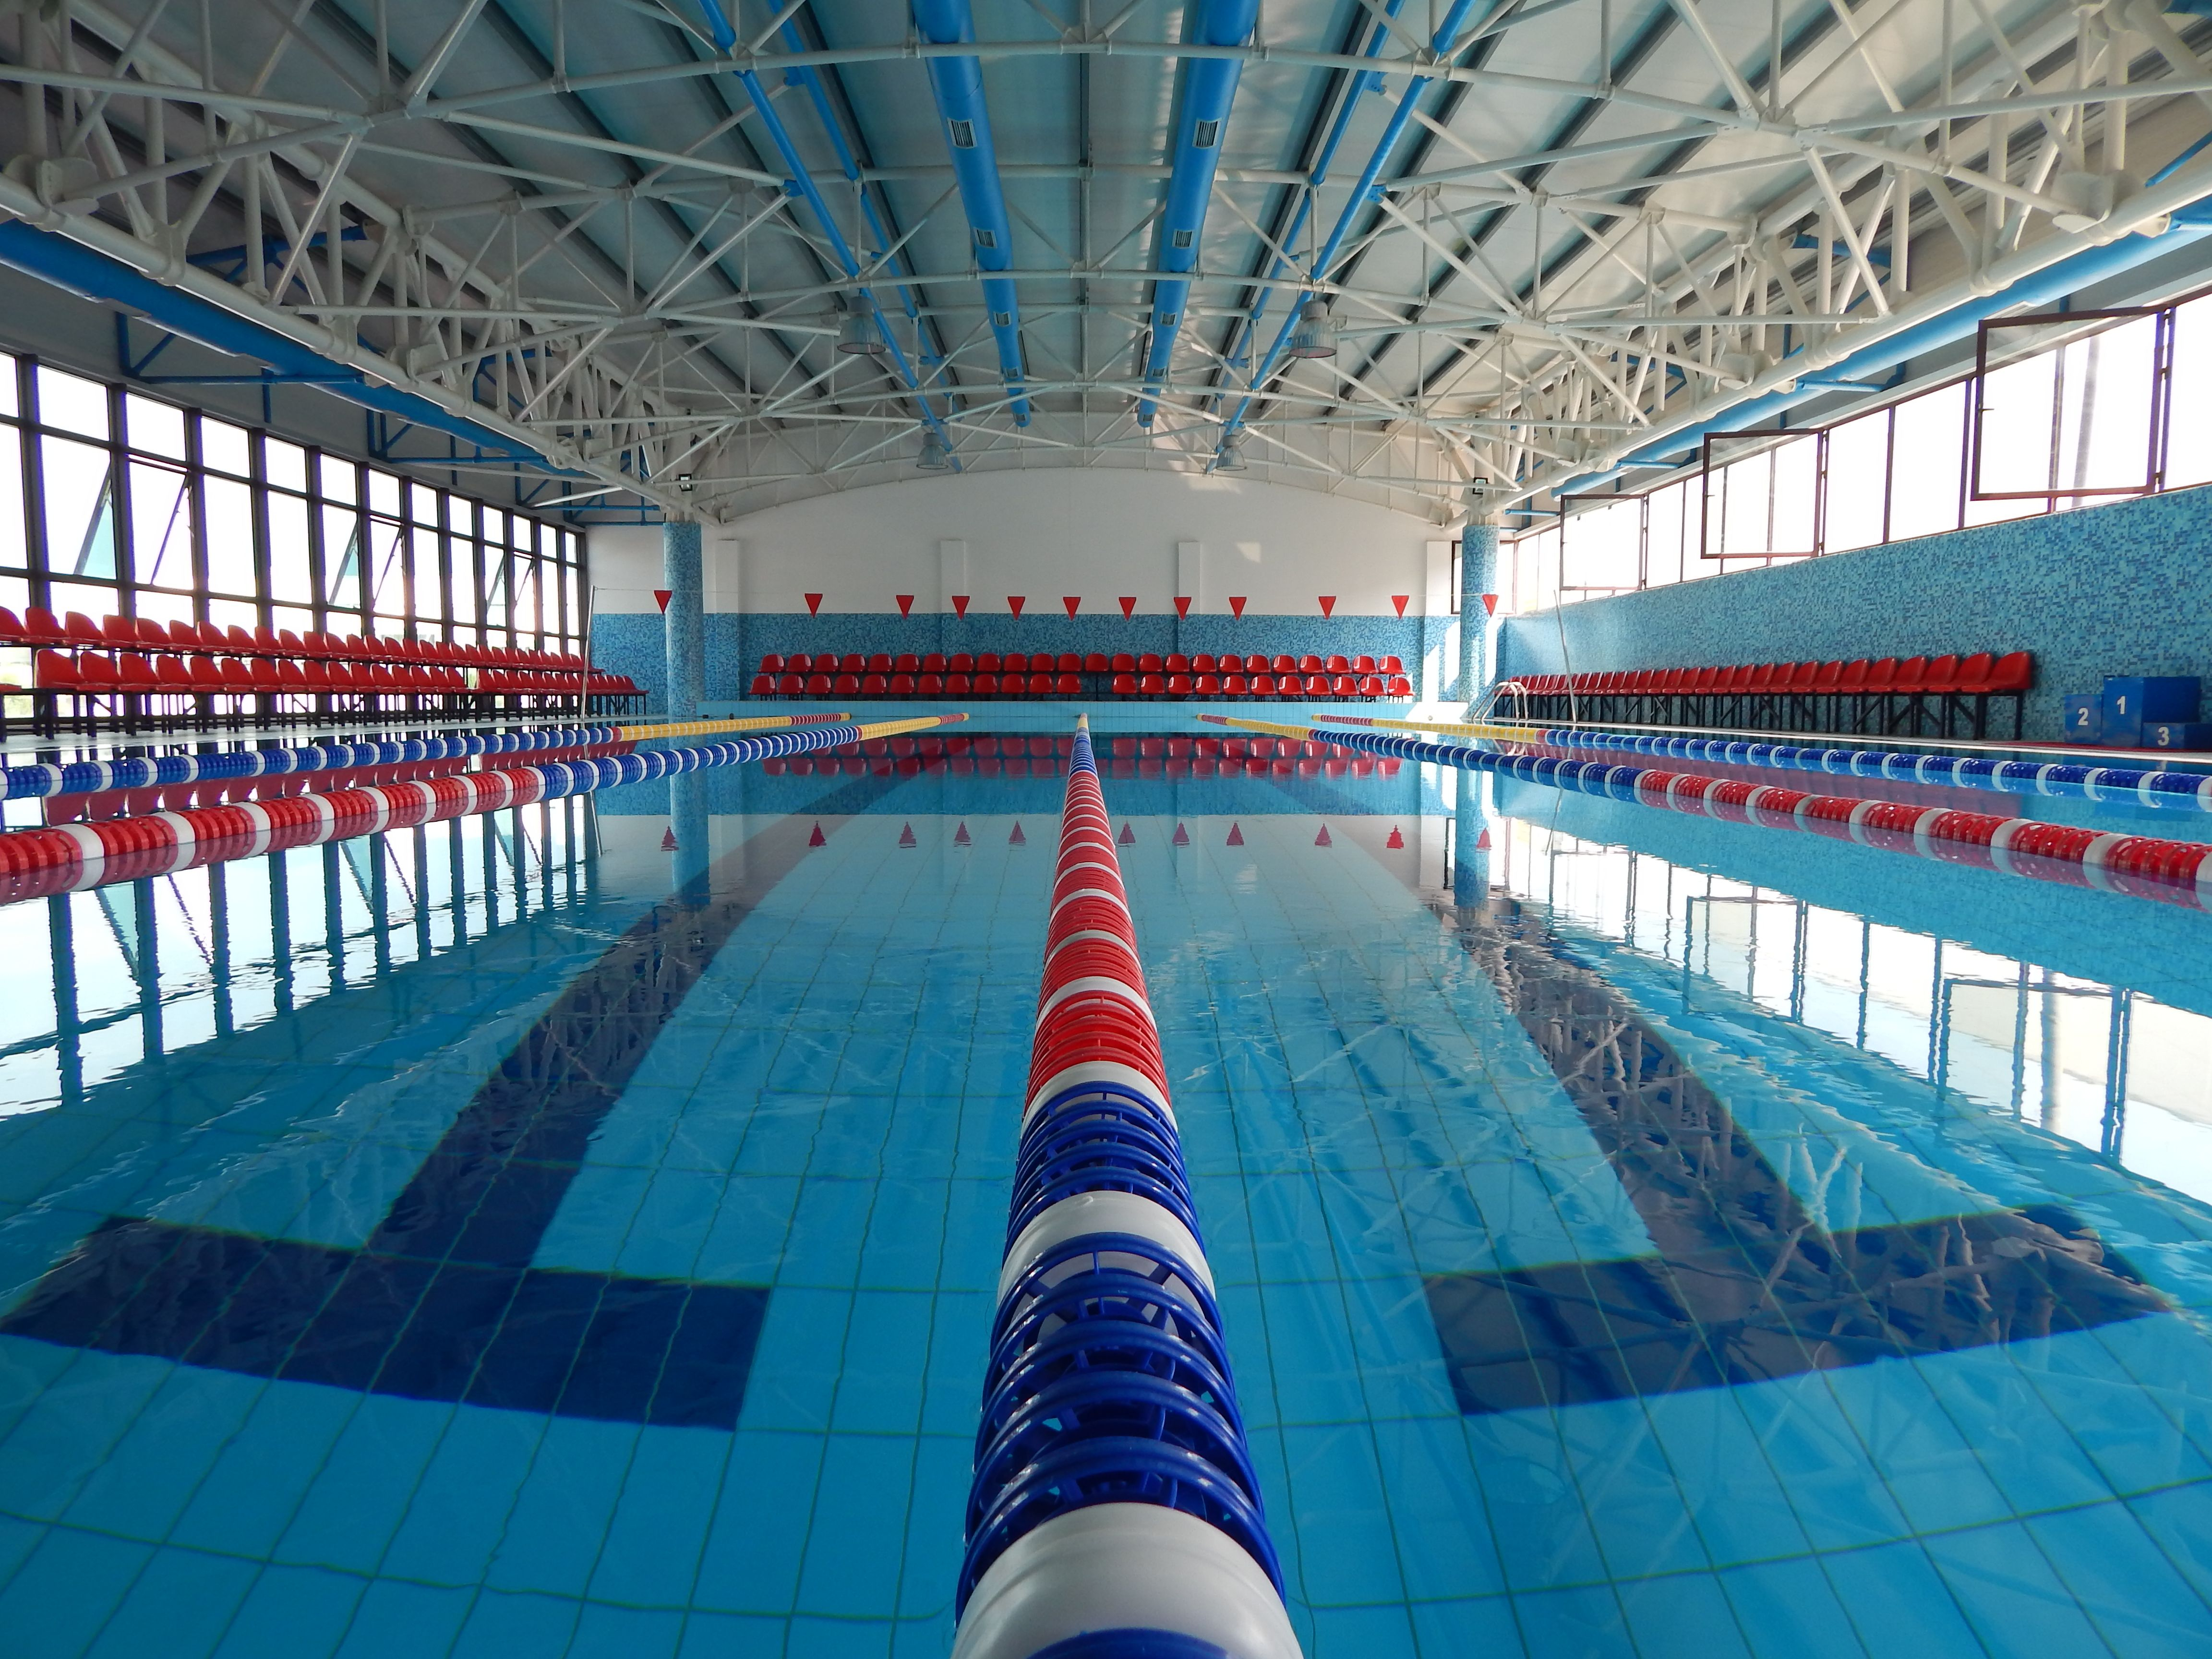 Sport Center Olympic Size Swimming Pool Swimming Pools Swim Lessons